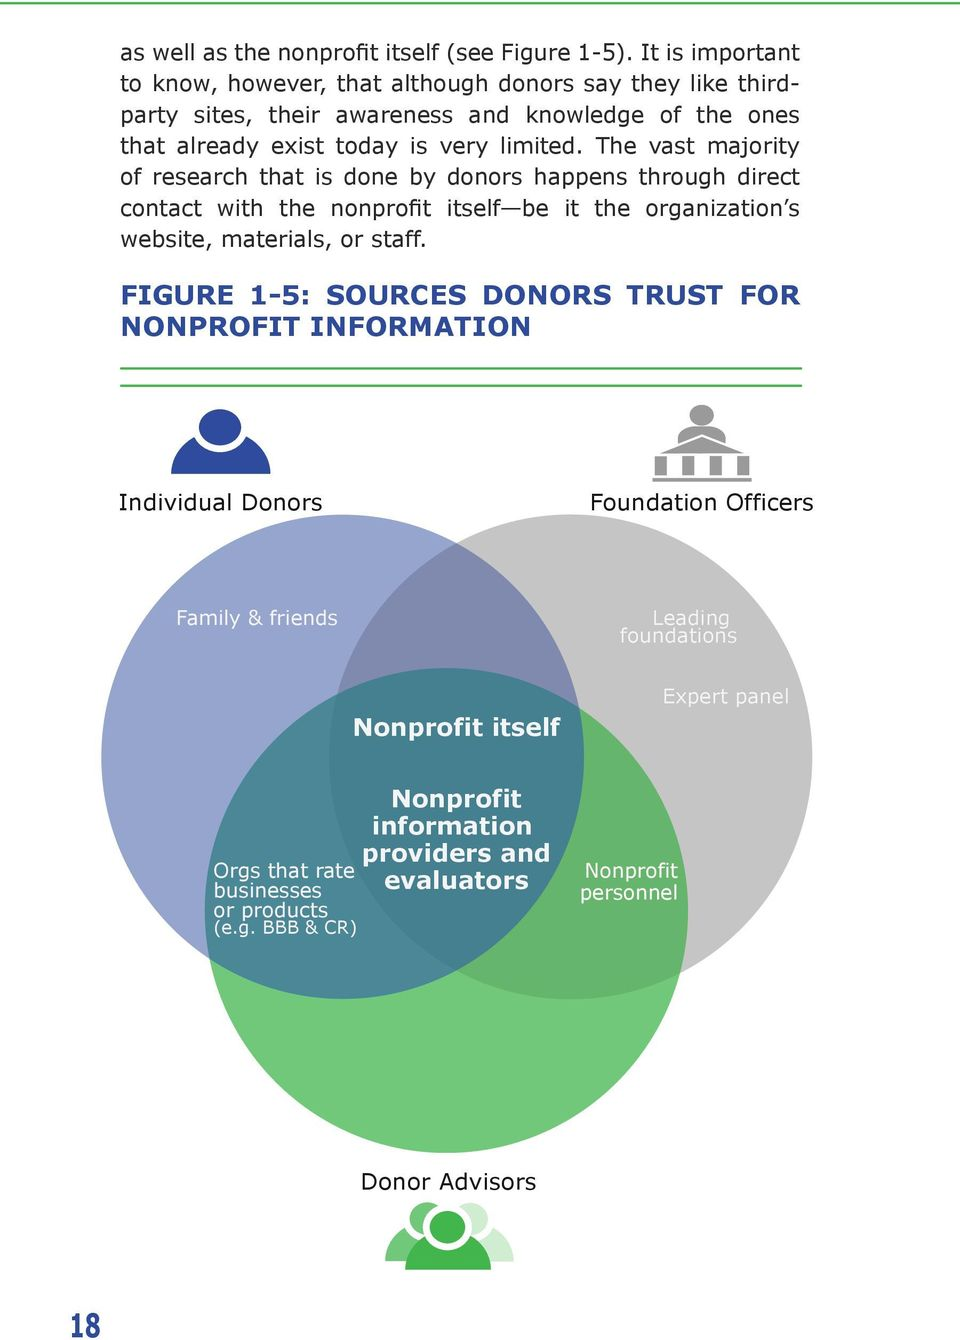 The vast majority of research that is done by donors happens through direct contact with the nonprofit itself be it the organization s website, materials, or staff.